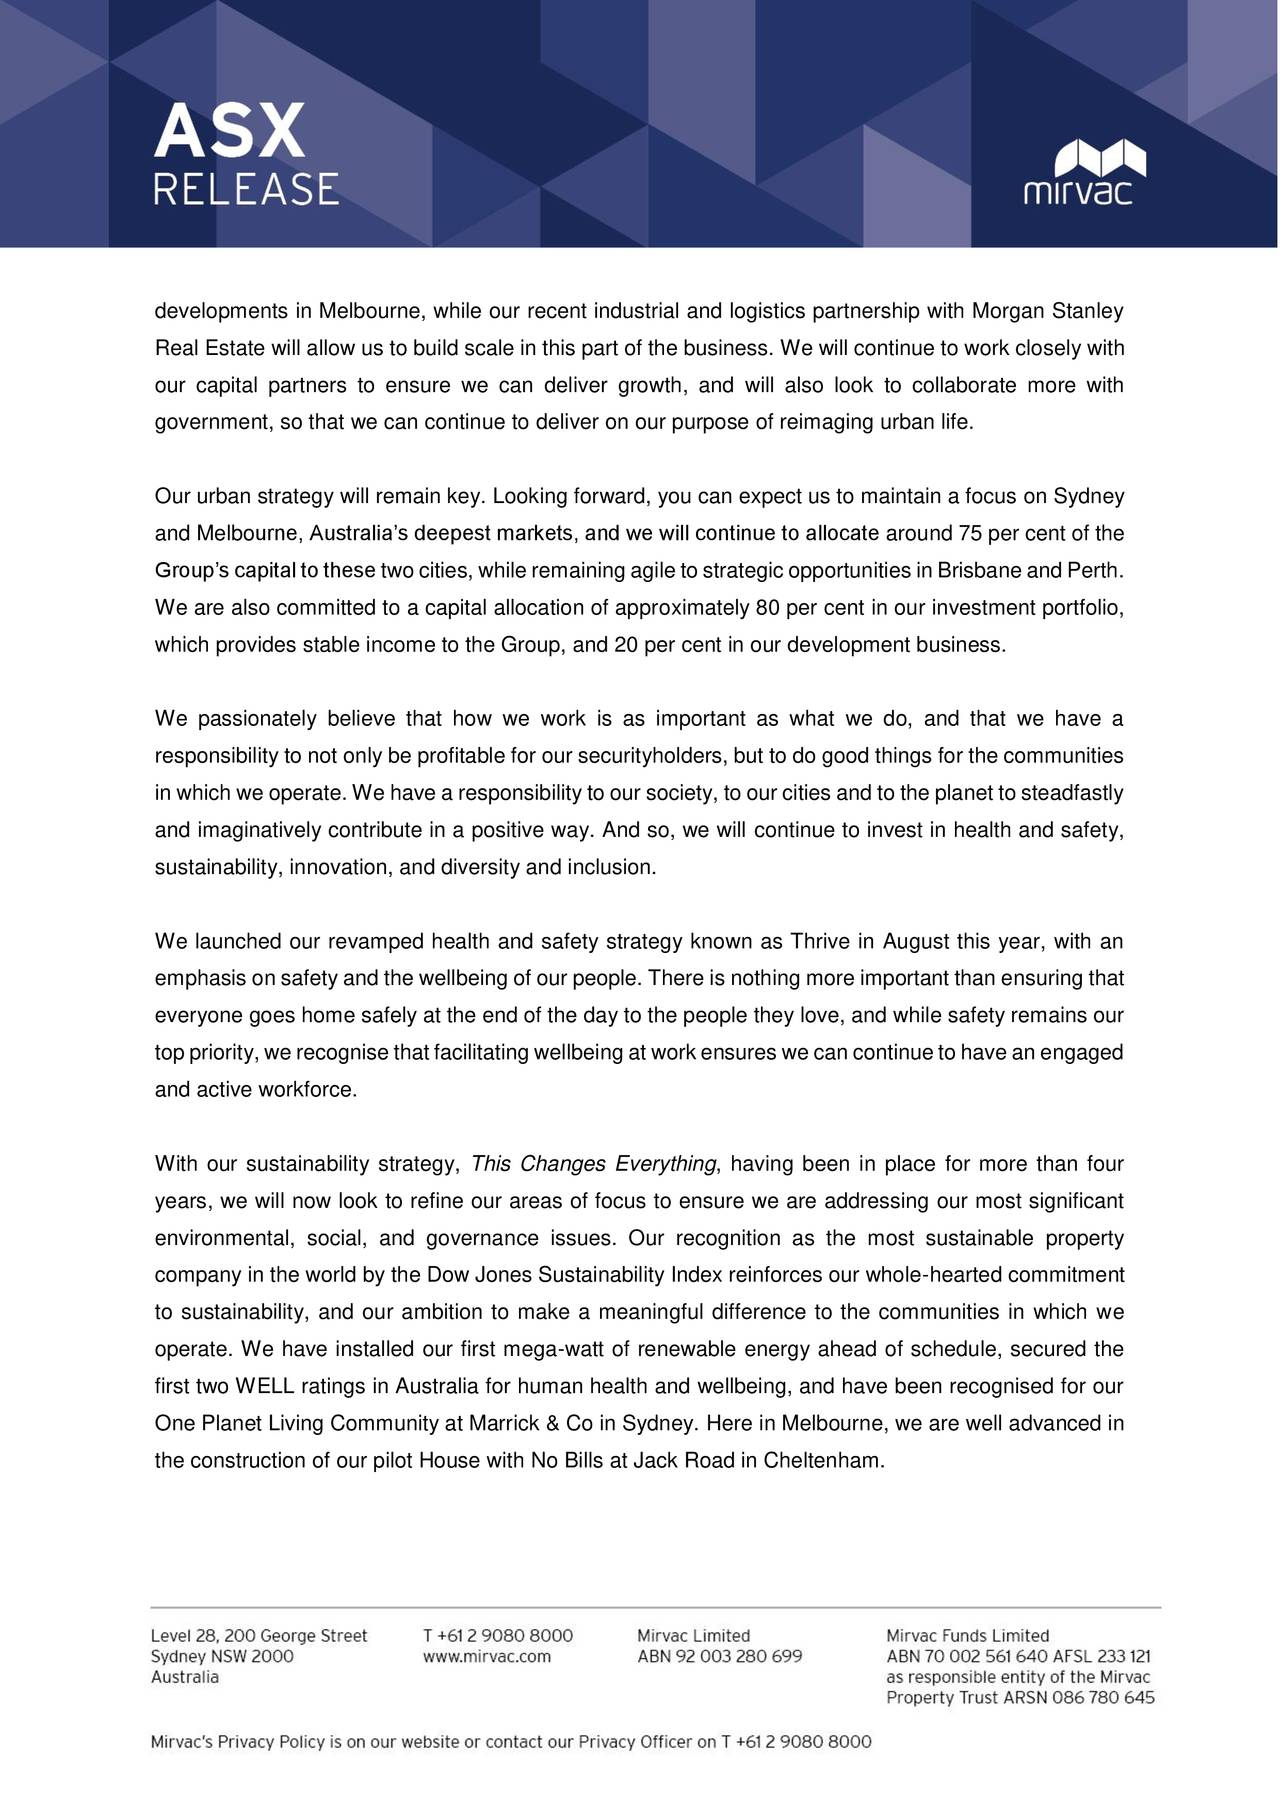 an analysis of the people in the society that believed to be contributing nothing to the development People no longer believed that ancestry or religion determined their status in life   possessed virtually all of the property the other ninety per cent owned nothing  as cities  and he transformed a mode of analysis that goes all the way back to   in the eighteen-forties, marx edited and contributed to political.